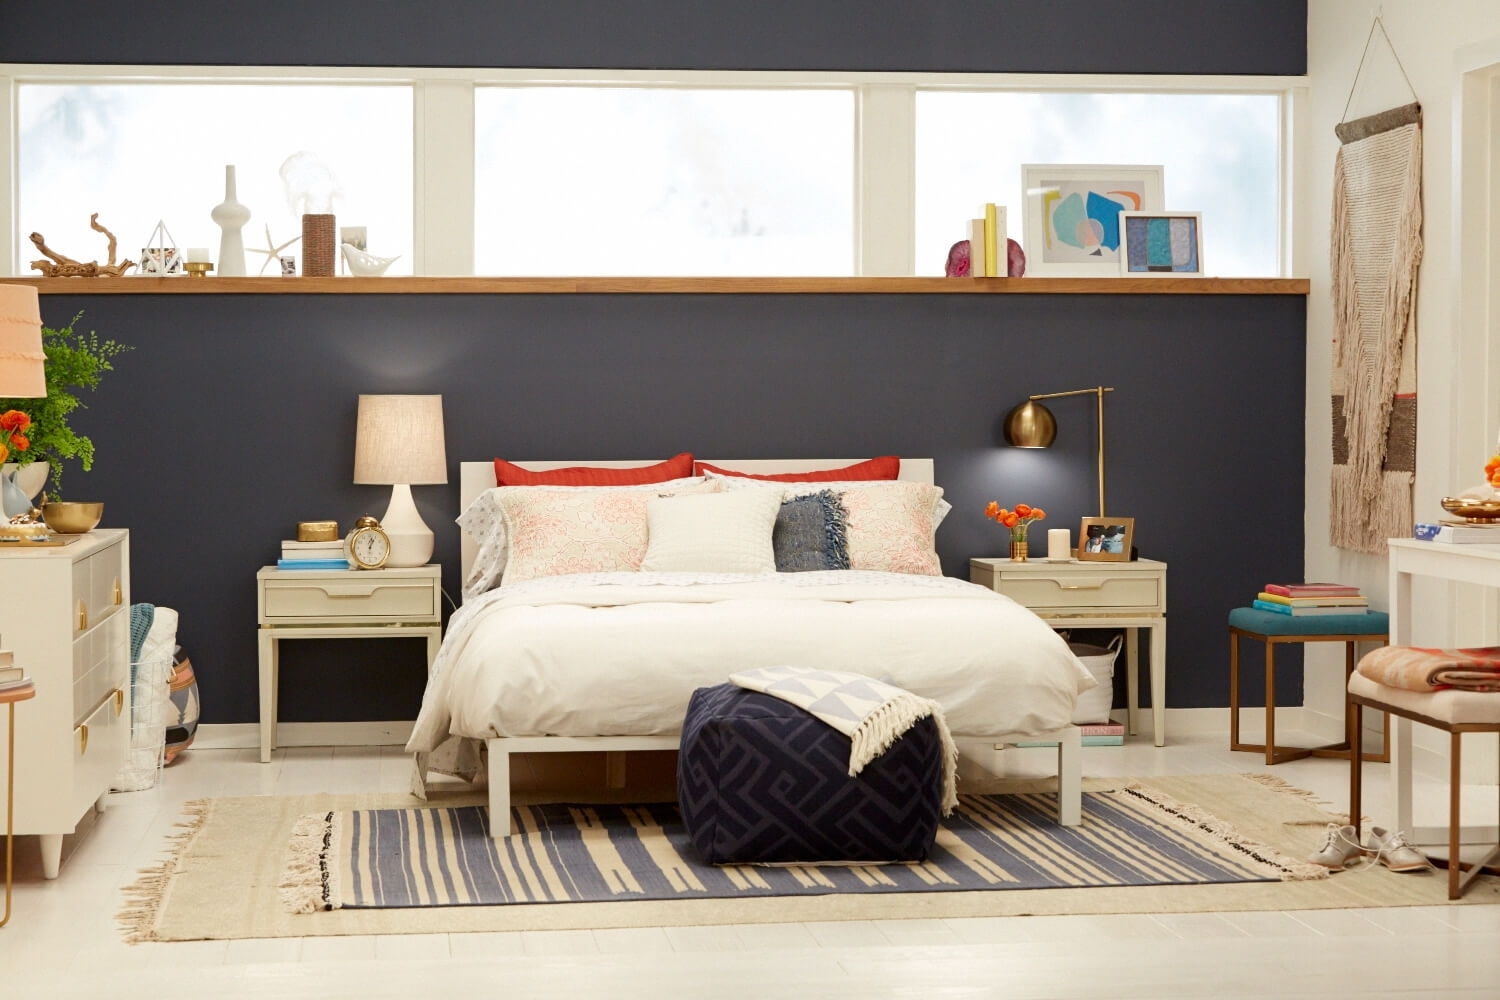 Target Chapter 7; Navy Blue Accent Wall Bedroom Makeover – Emily With Regard To 2018 Navy Wall Accents (View 15 of 15)